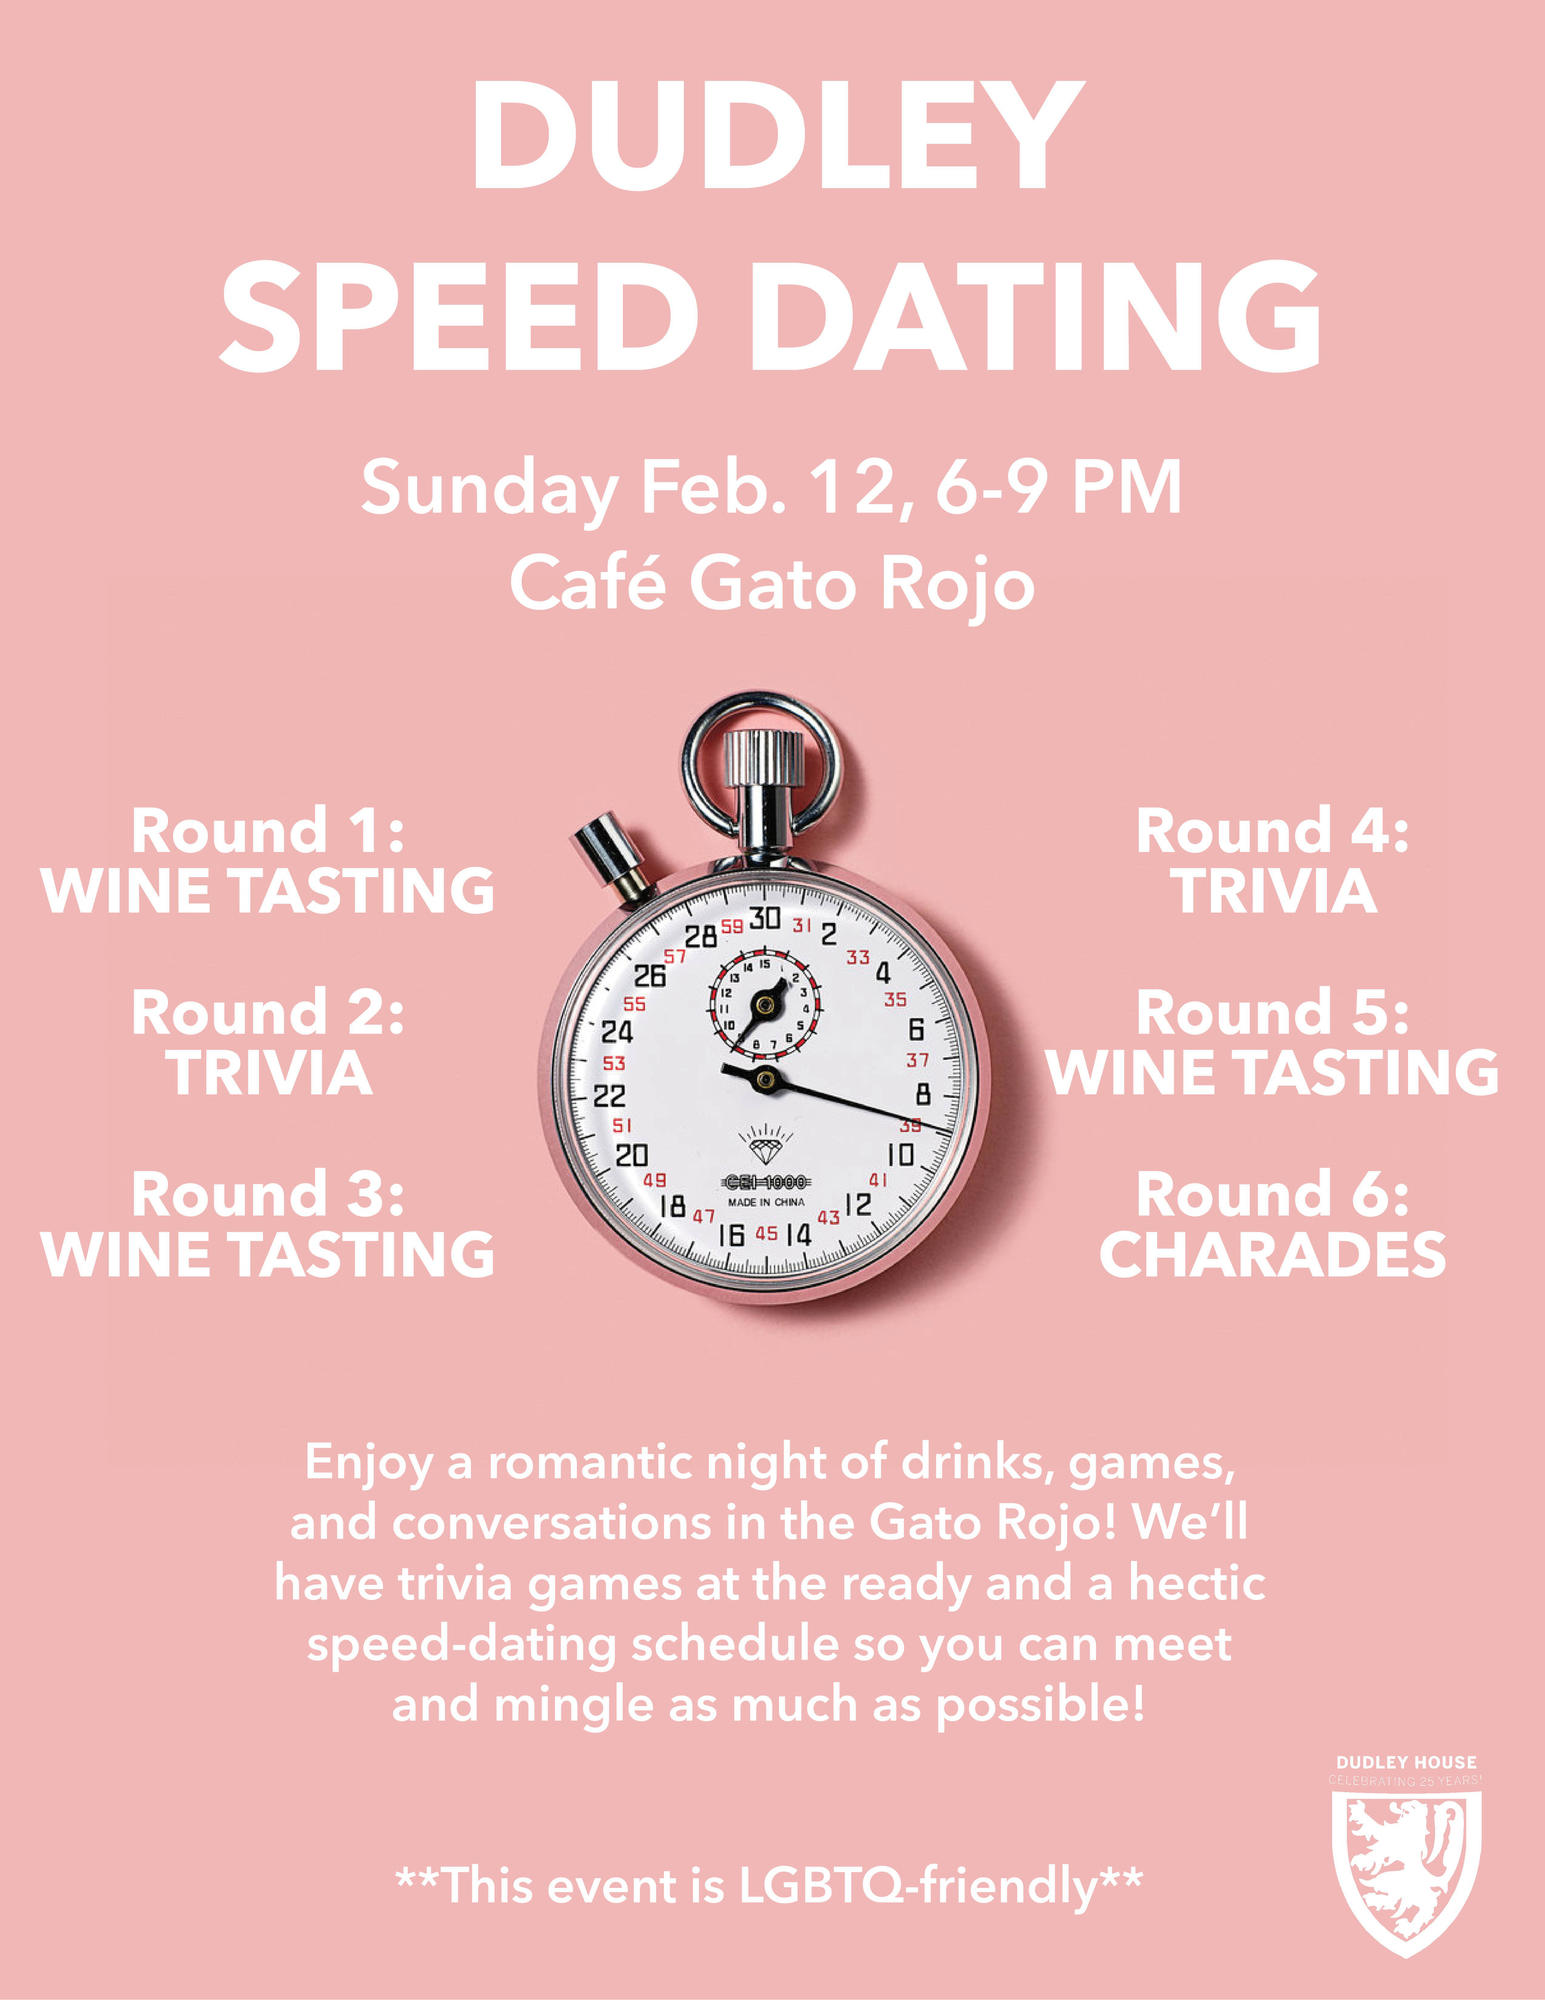 Dudley Speed Dating